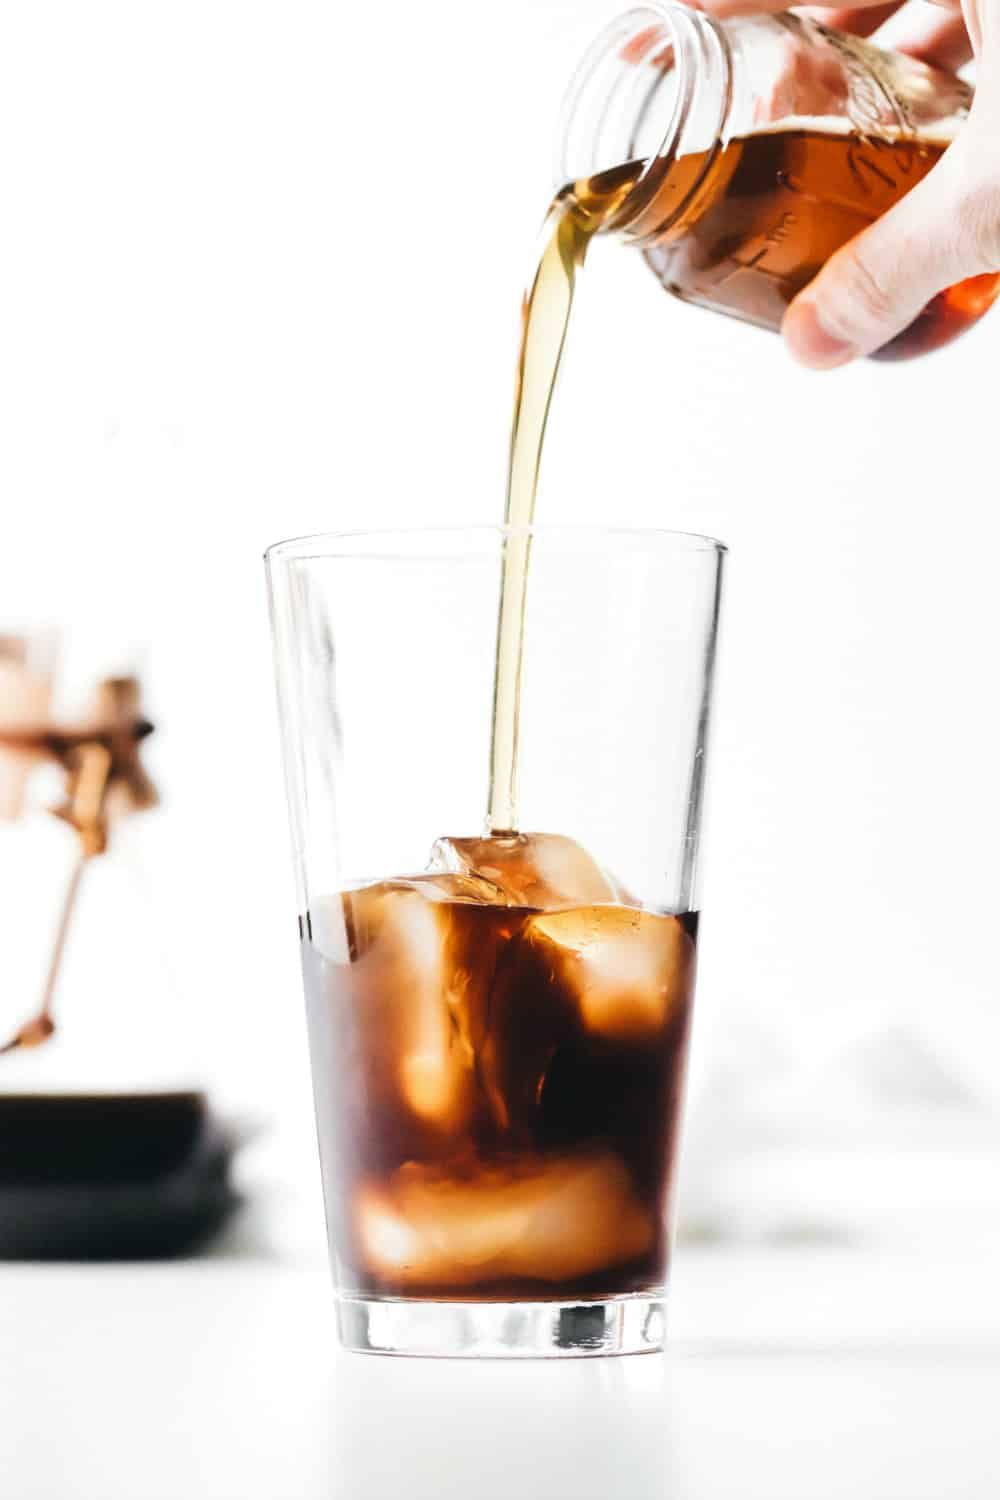 Adding vanilla coffee syrup to a glass of iced coffee